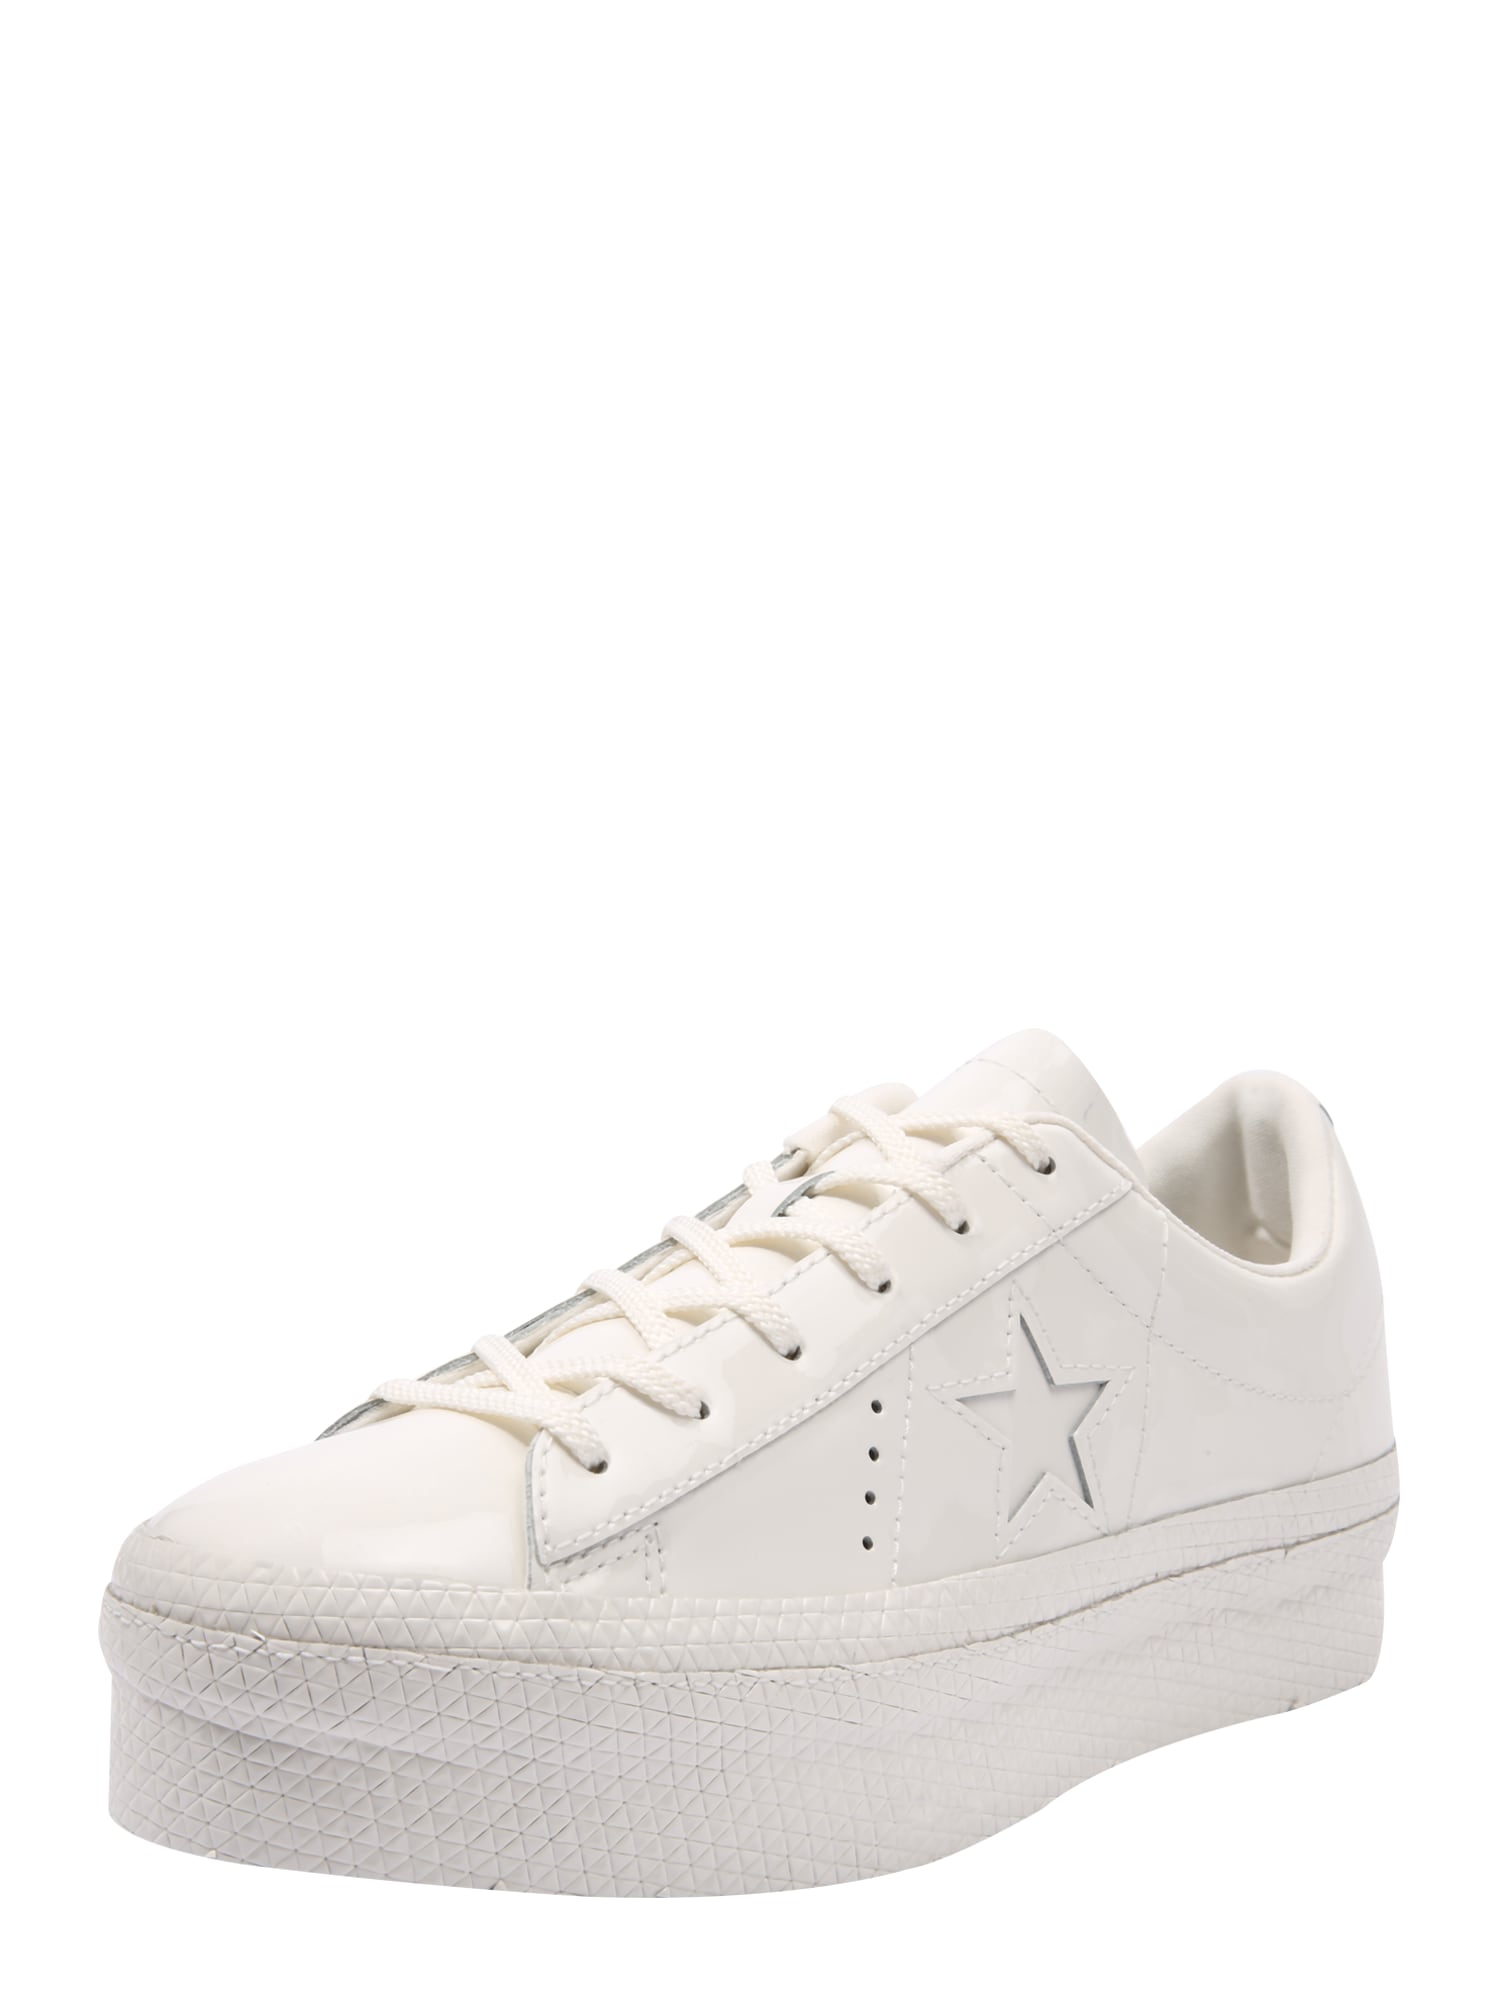 CONVERSE, Dames Sneakers laag 'ONE STAR PLATFORM - OX', wit